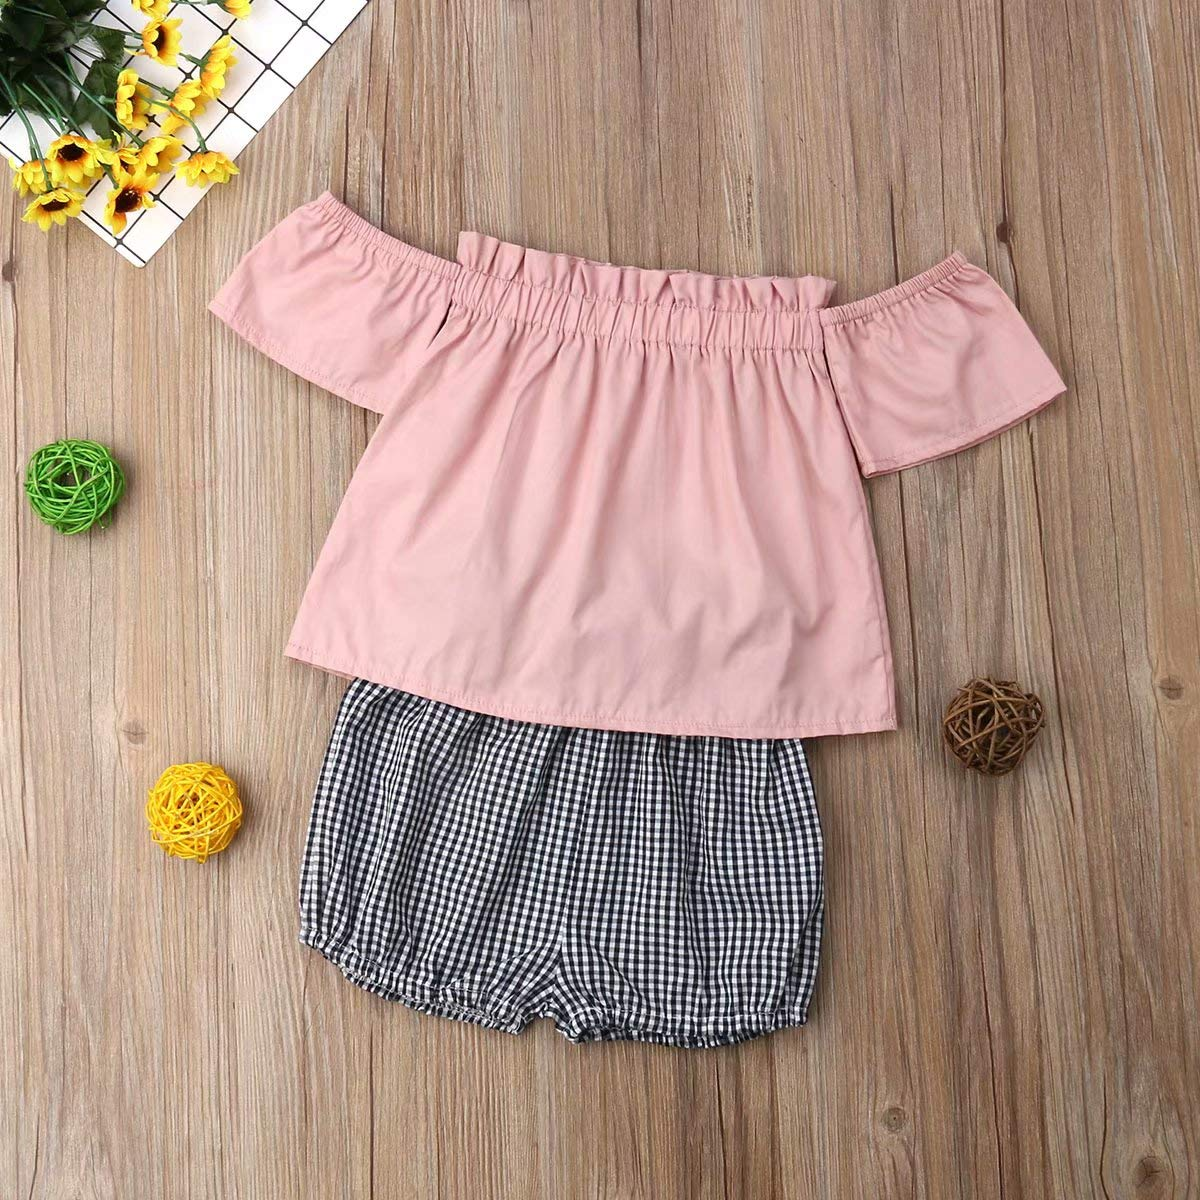 High Waist Plaids Shorts Summer Outfit Kids Toddler Baby Girl 2Pcs Clothes Set Off Shoulder Solid Tops